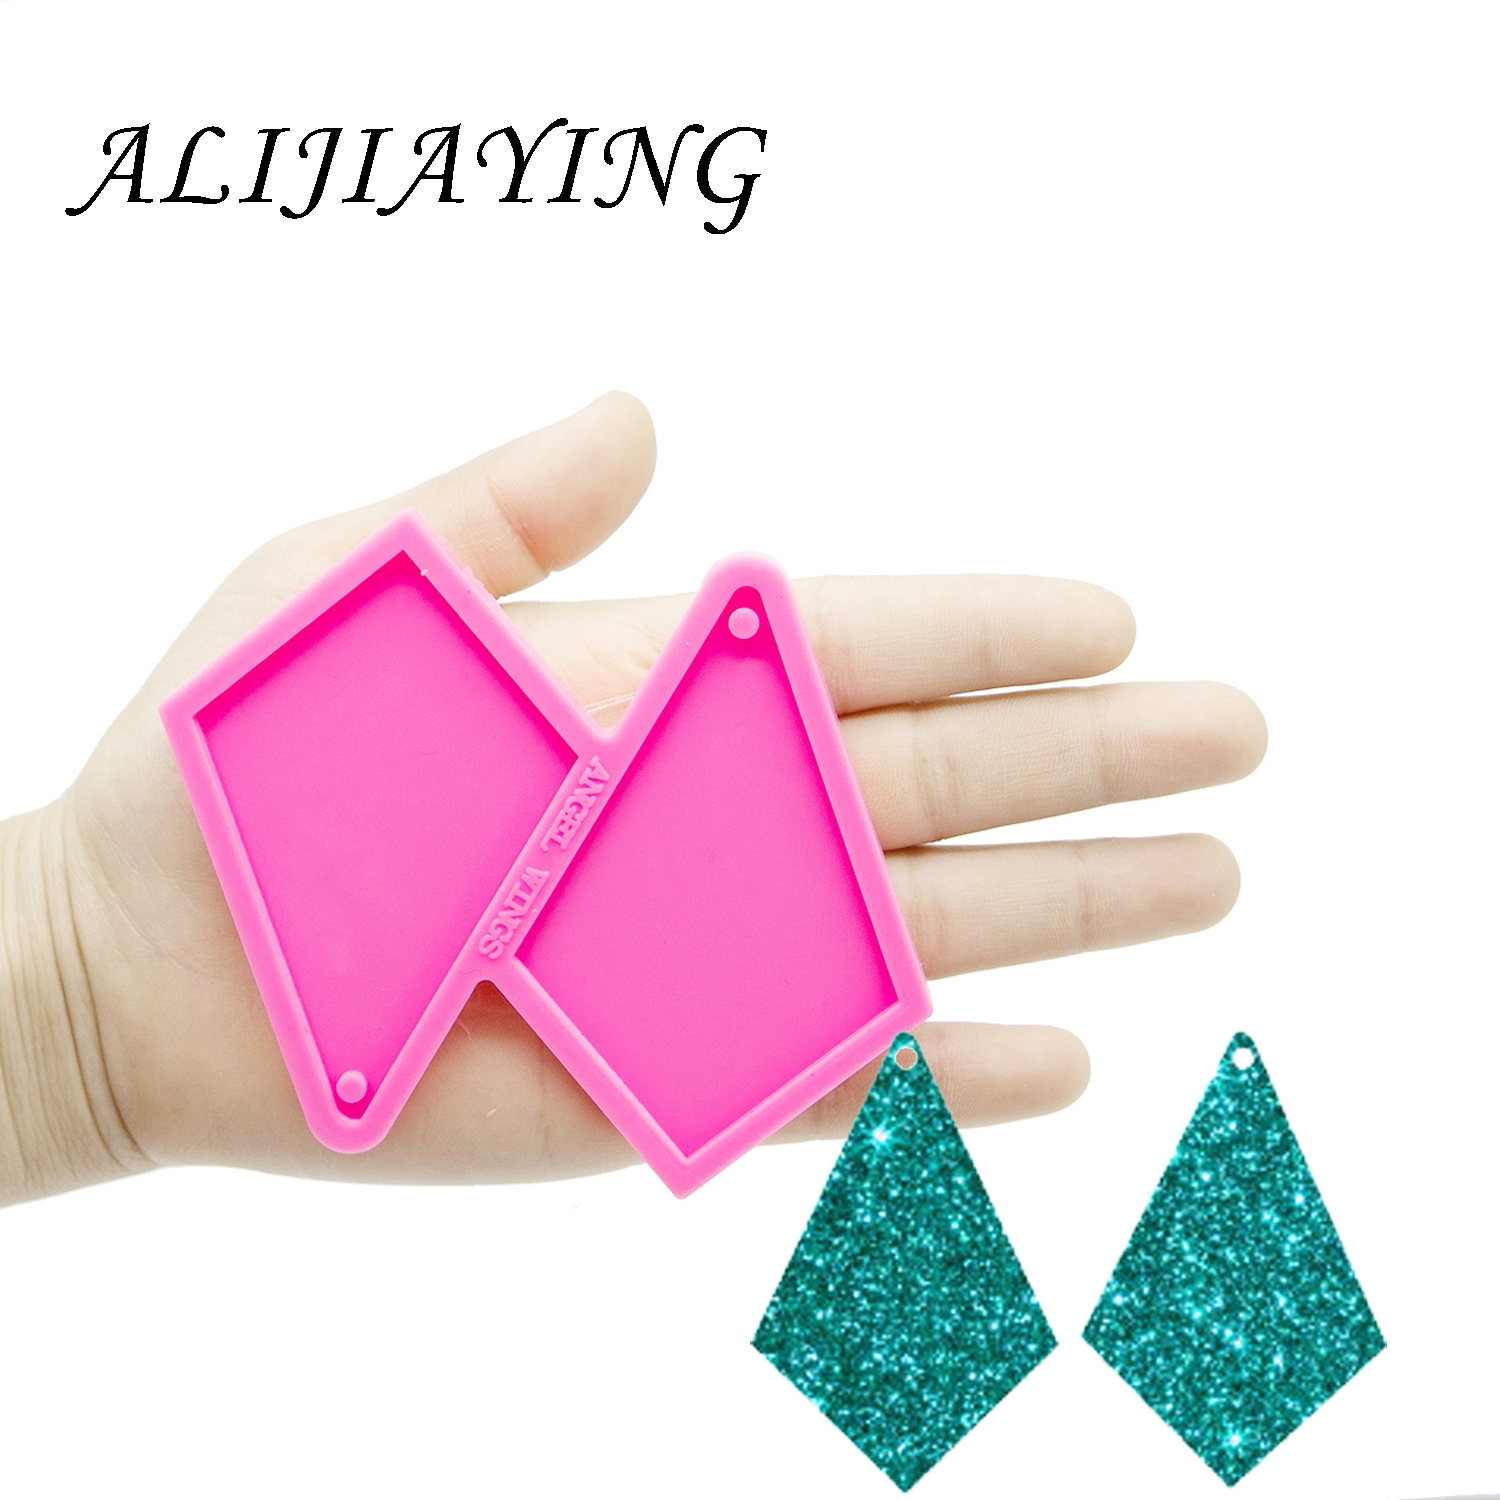 Kite Shape Mold Silicone For Craft DIY Silicone Earring Mould Gem Epoxy Resin Moulds For Jewelry DY0314